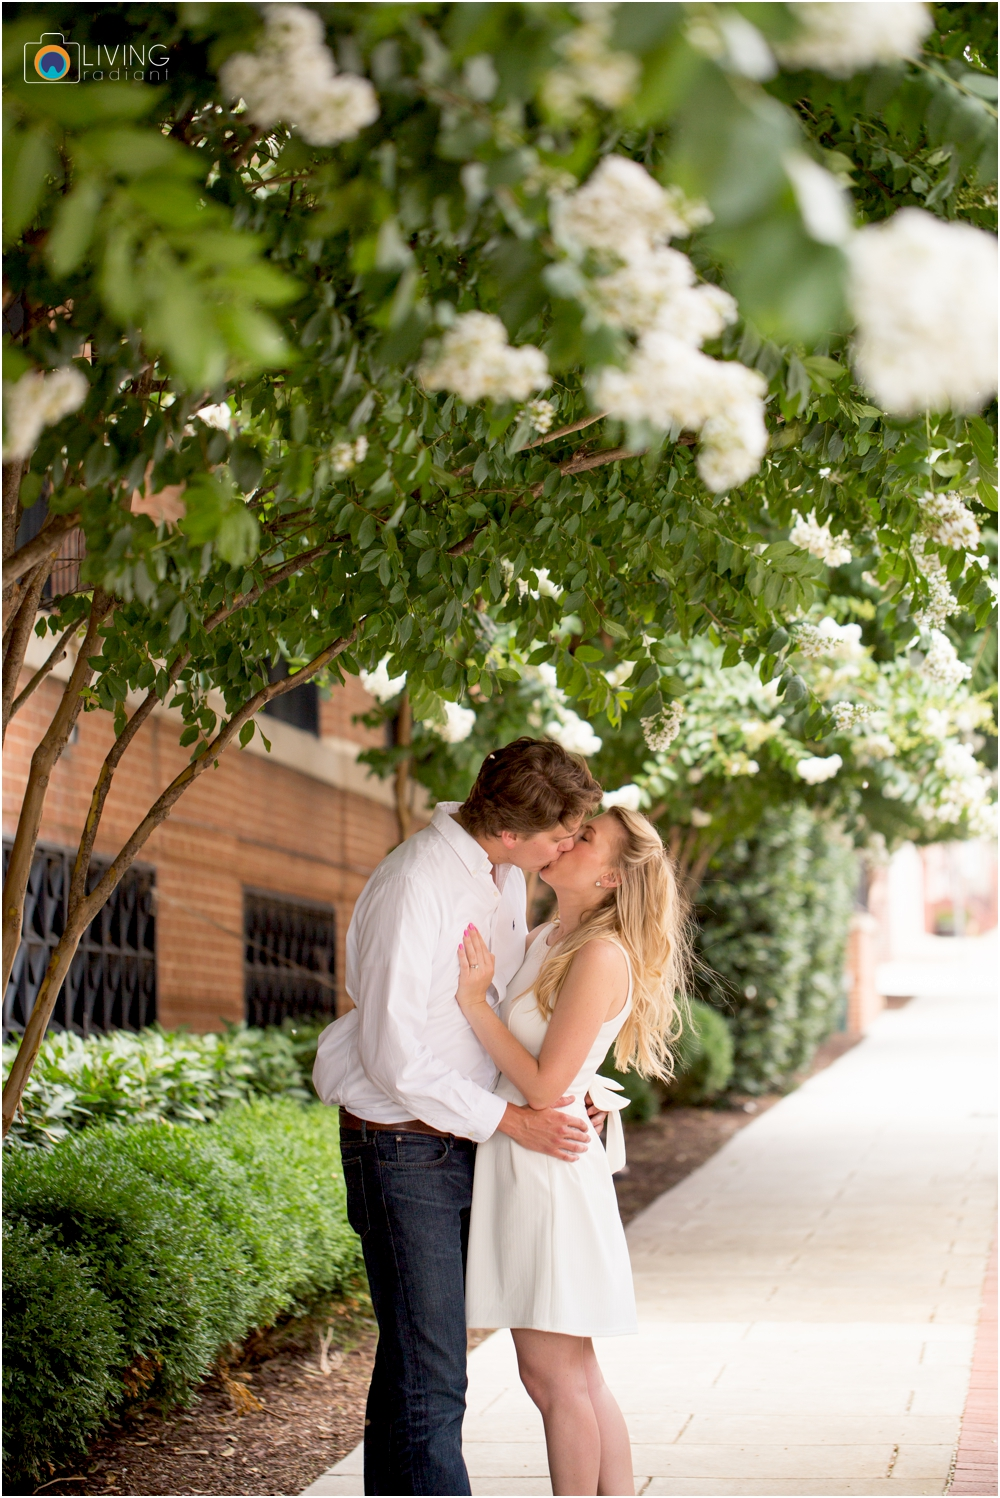 chris-katelynn-engagement-downtown-canton-living-radiant-photography-photos_0018.jpg